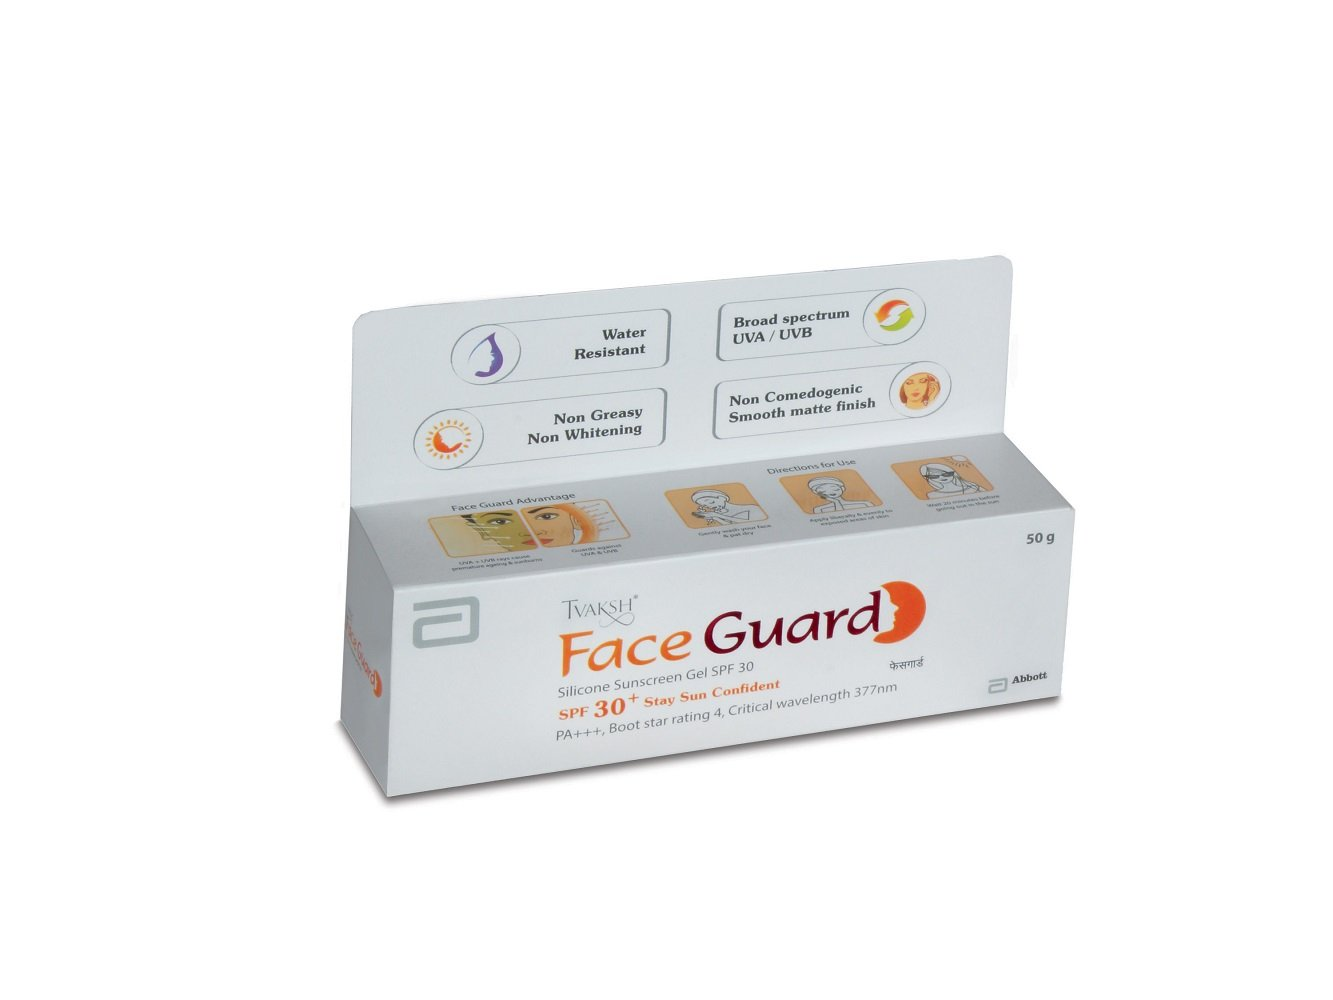 Tvaksh Face Guard Silicone Sunscreen Gel SPF 30, 50g product image